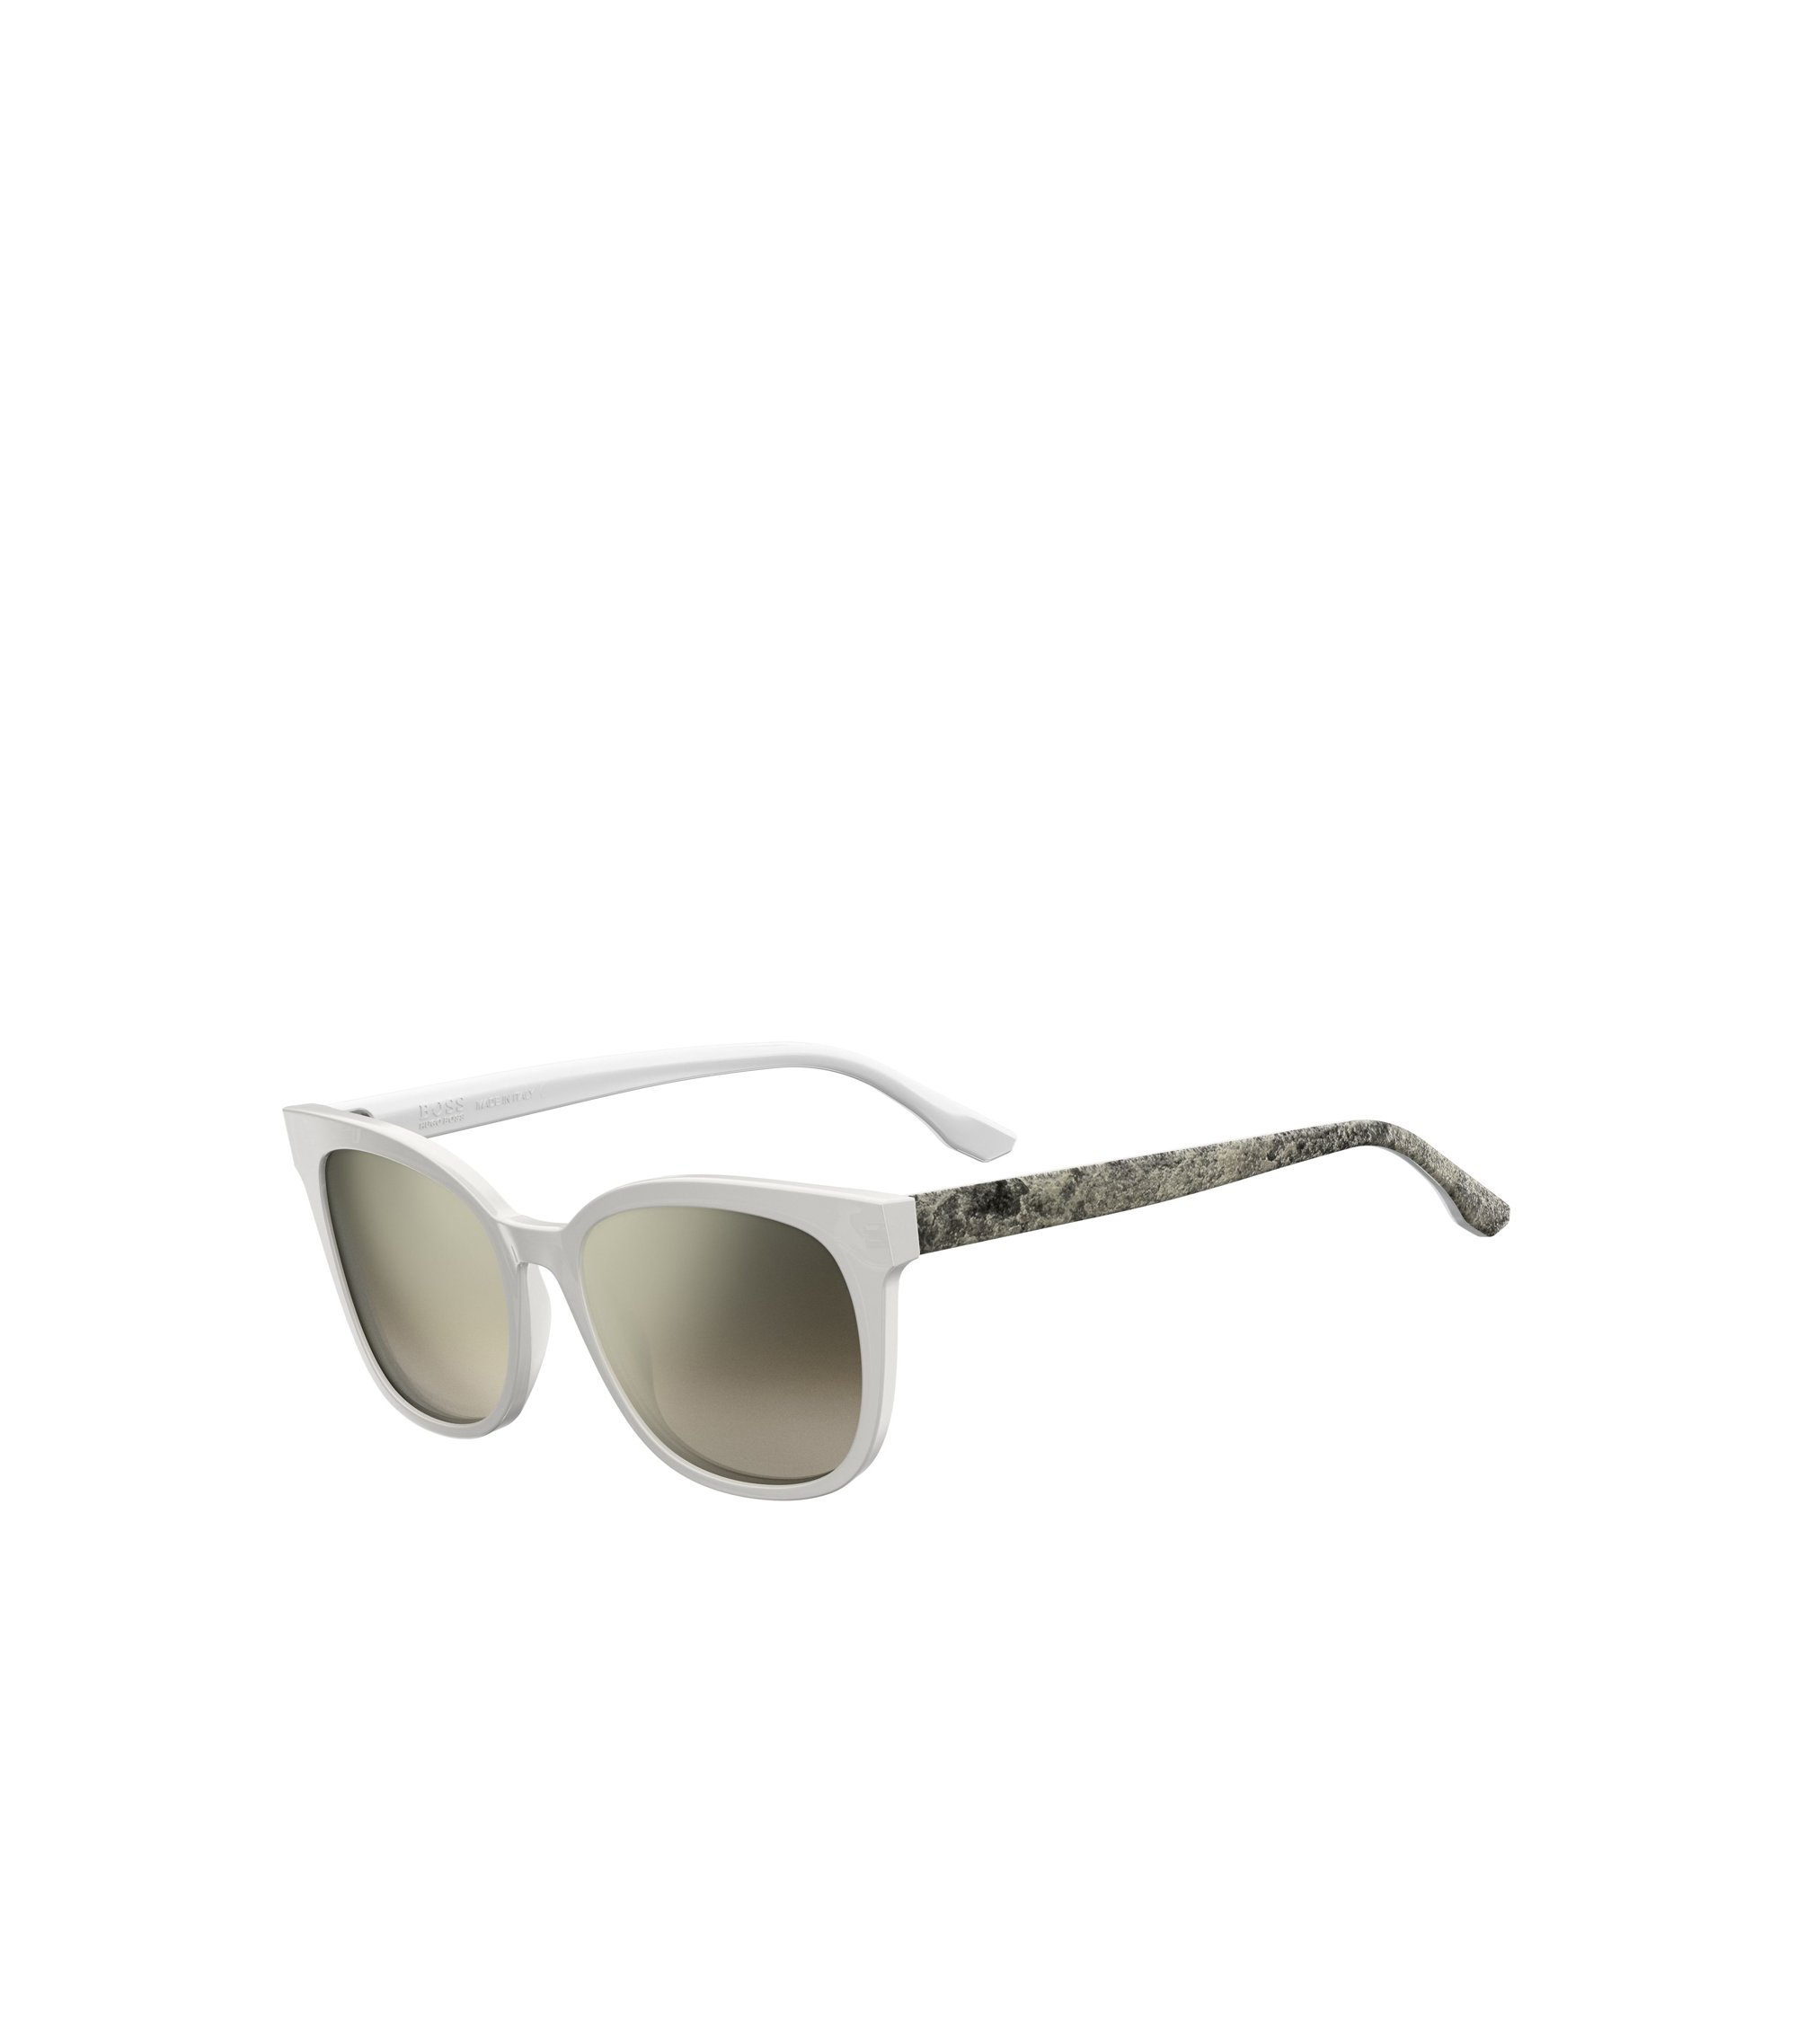 White Acetate Round Sunglasses | BOSS 0893, Assorted-Pre-Pack